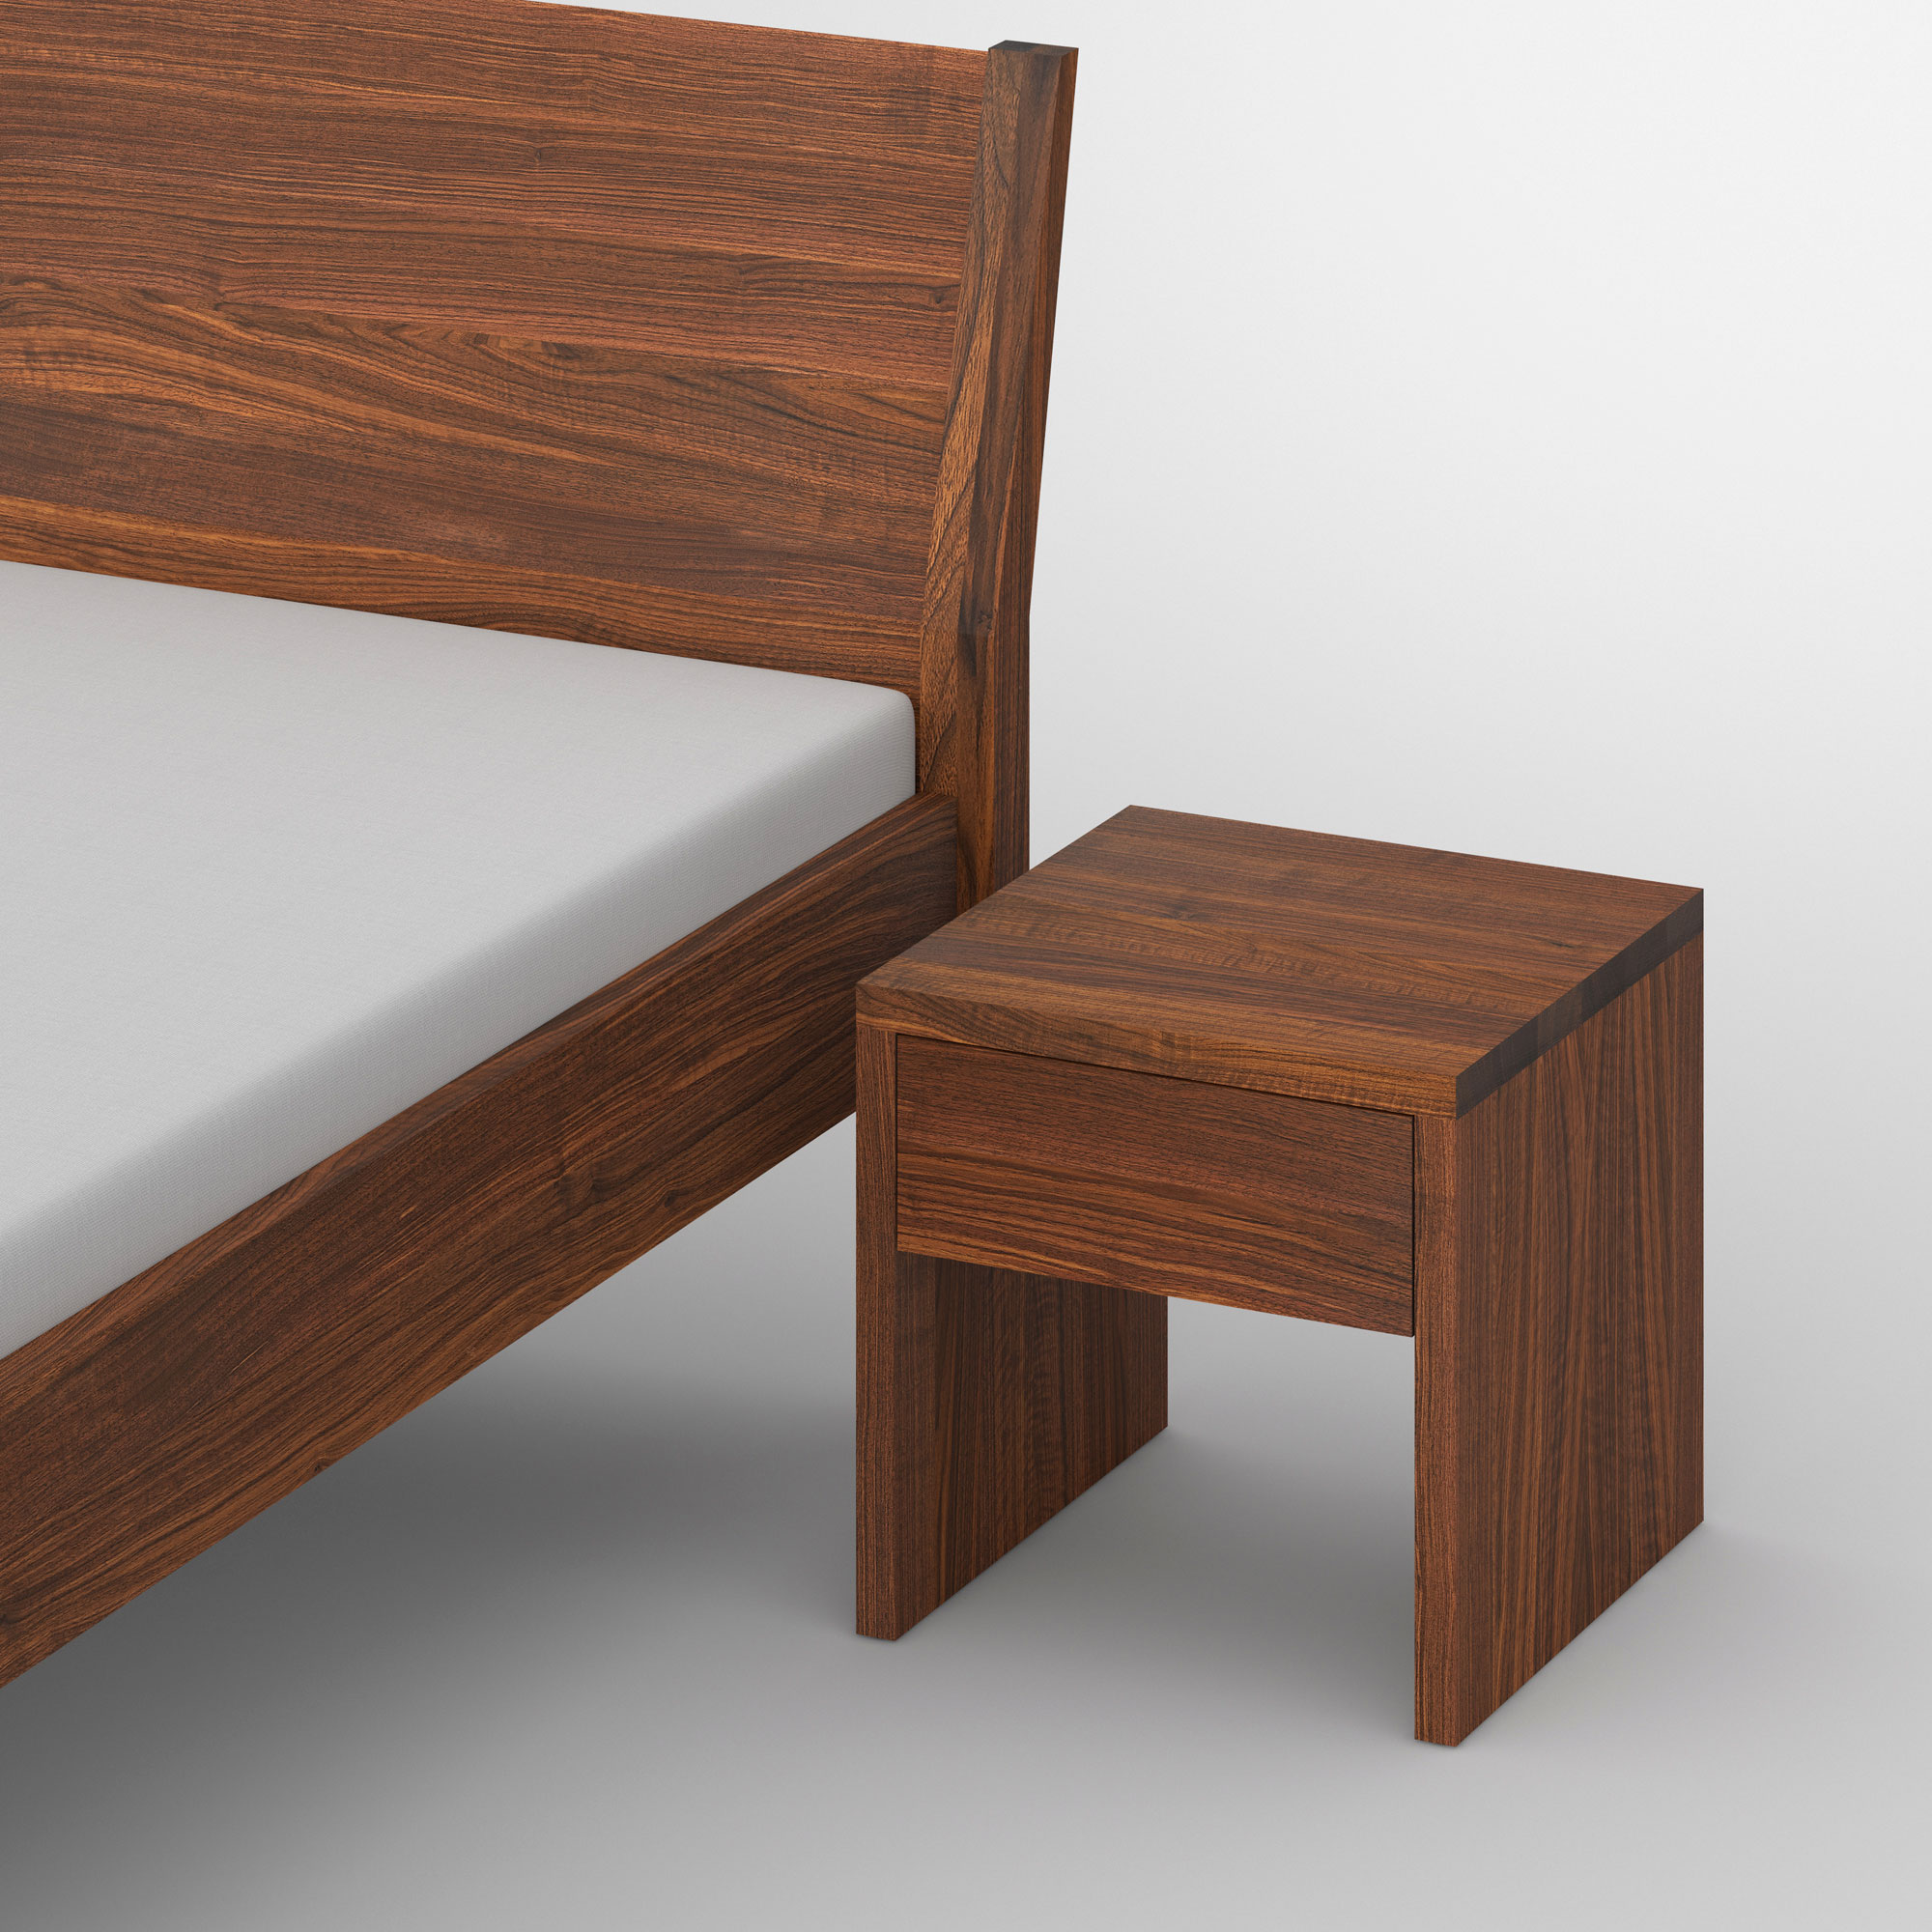 Tailor-Made Night Table MENA cam1 custom made in solid wood by vitamin design